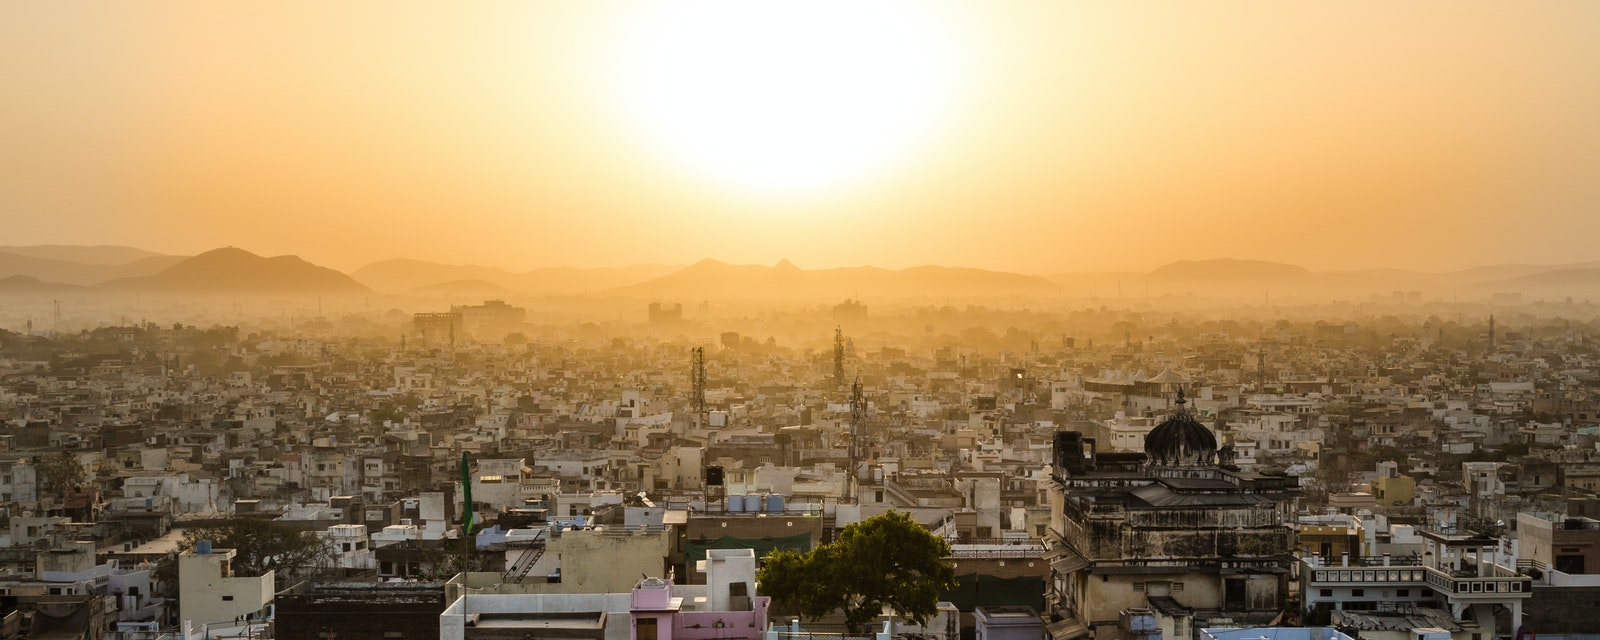 High view showing part of the Udaipur skyline at sunrise